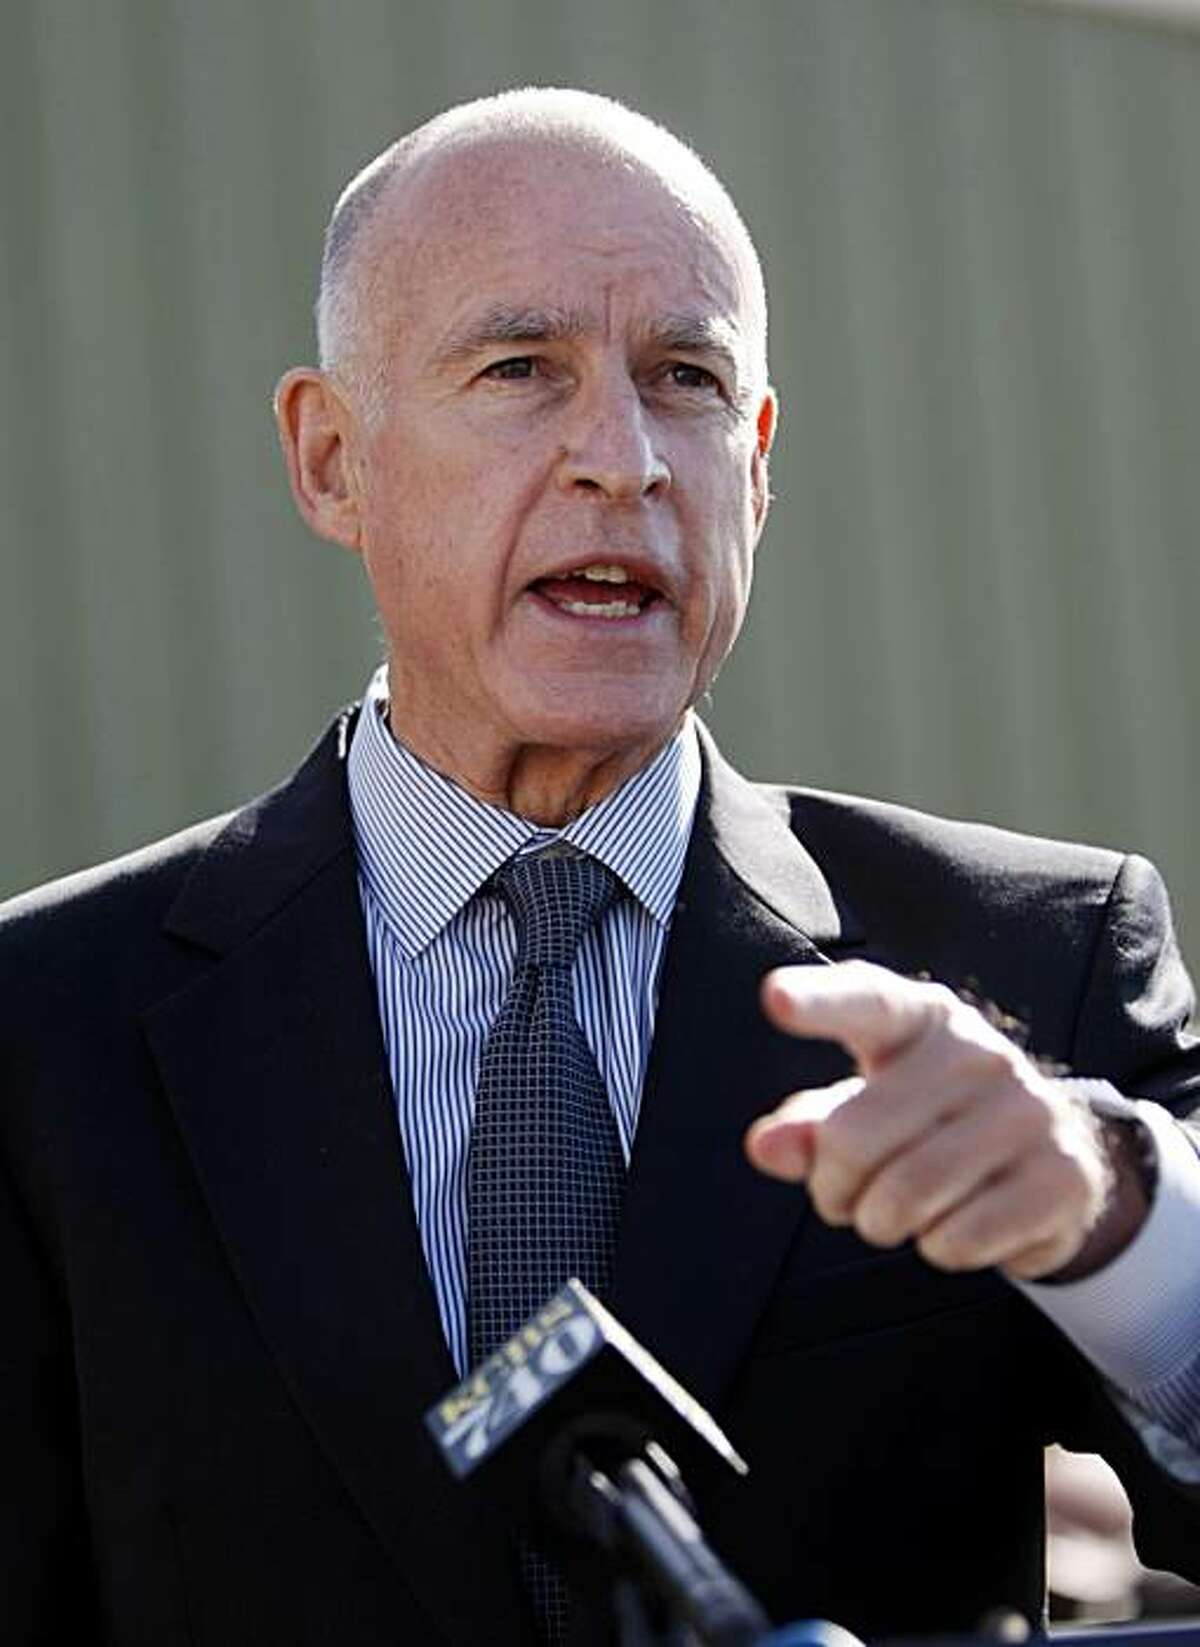 California attorney general and democratic gubernatorial candidate Jerry Brown gestures at news conference at Petersen Dean Roofing and Solar Systems in Newark, Calif., Thursday, Sept. 23, 2010.